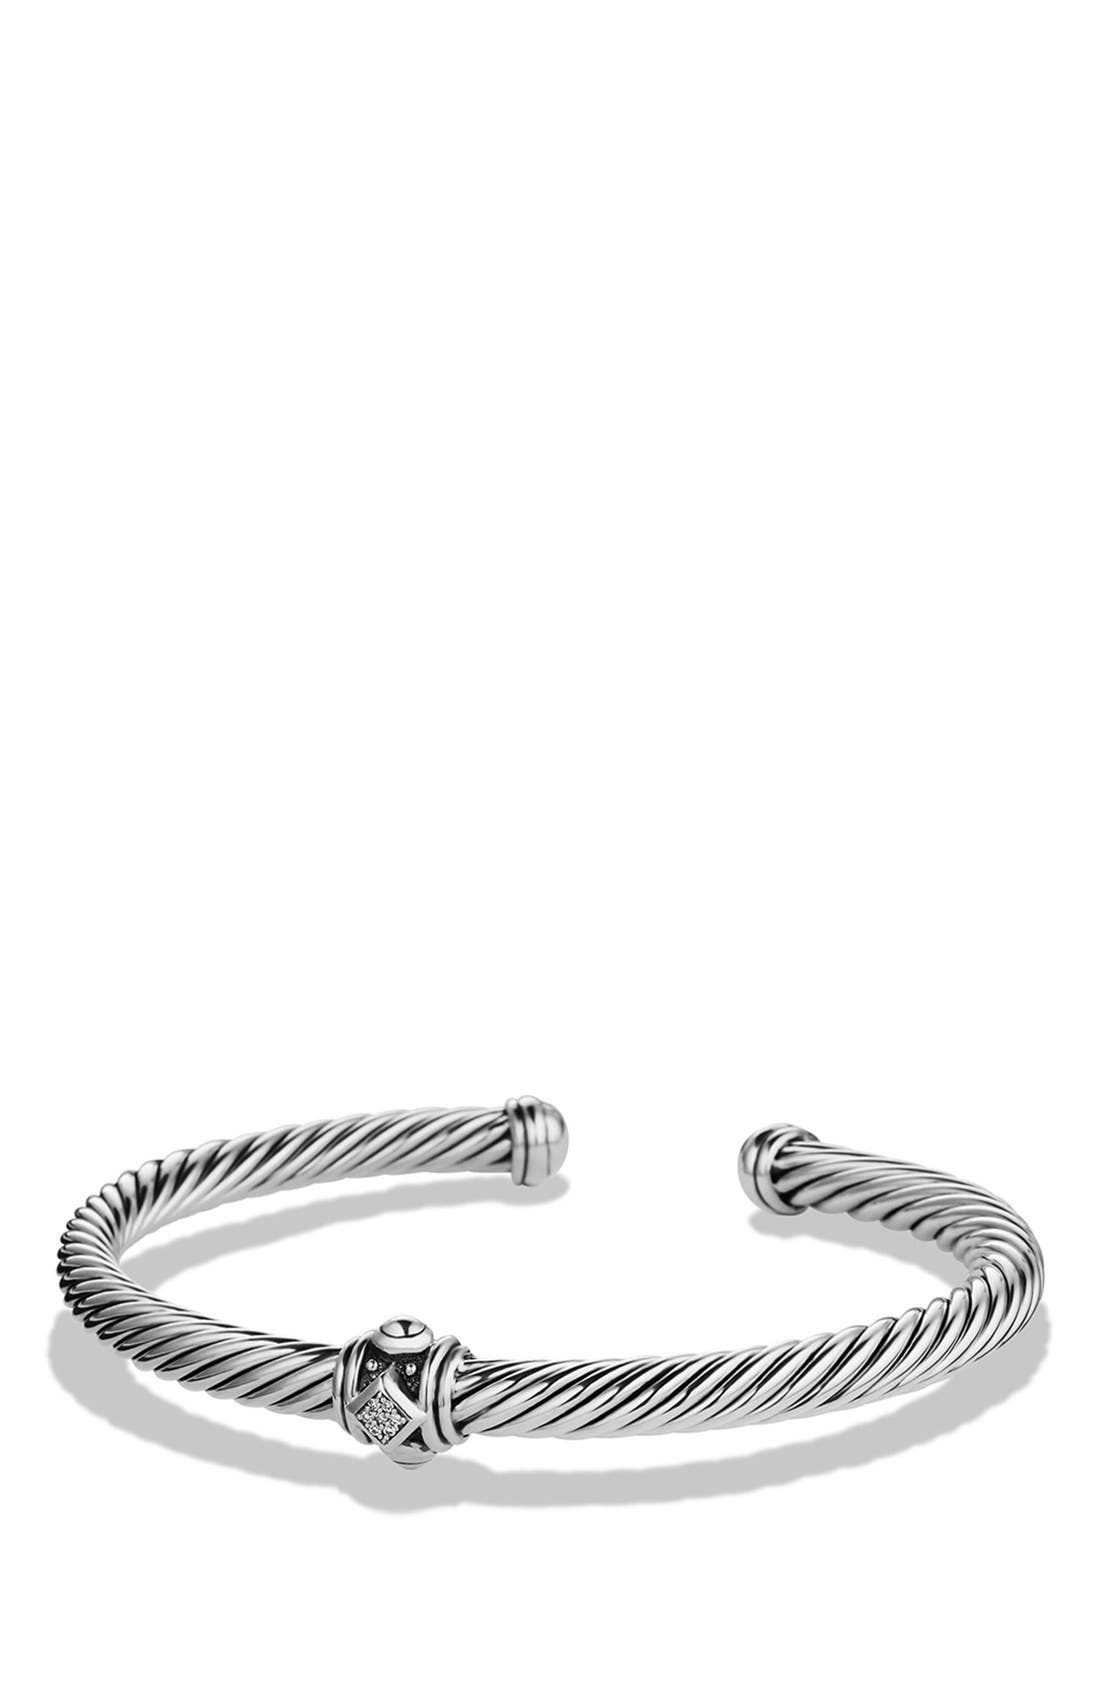 David Yurman 'Renaissance' Bracelet with Diamonds